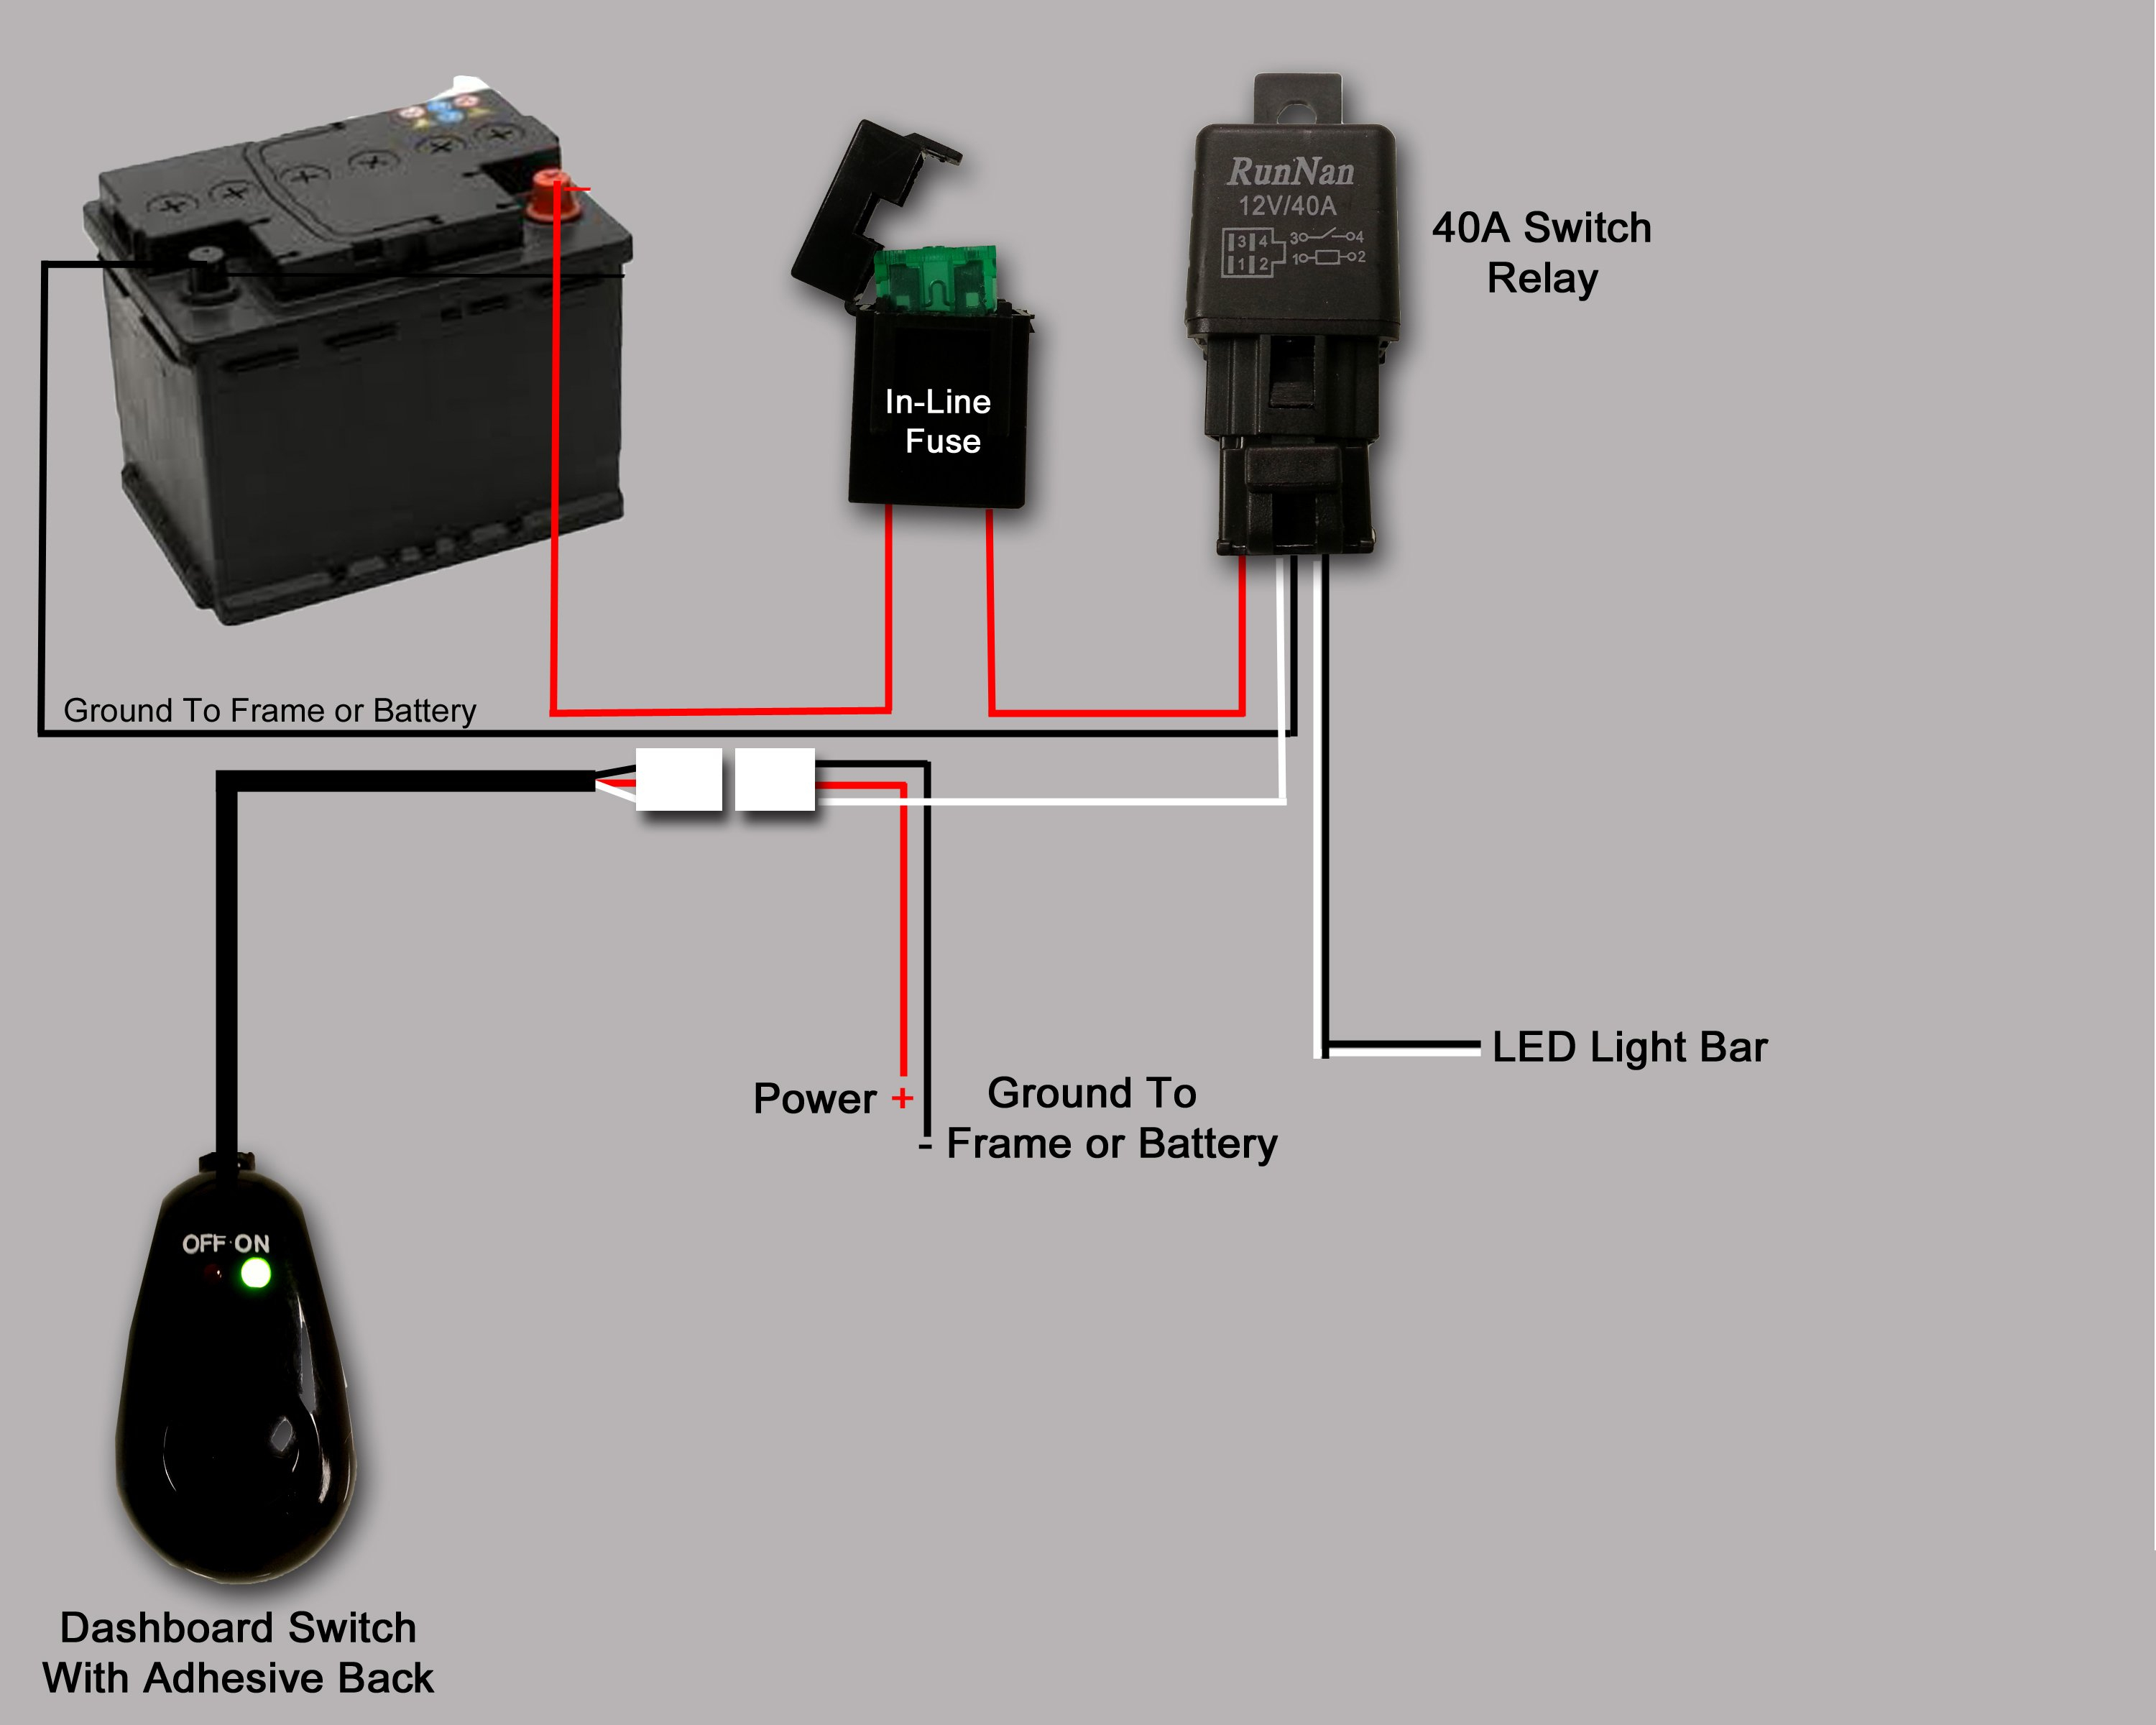 Wiring Led Lightbar - Help A Newbie - Patrol 4X4 - Nissan Patrol Forum - Light Bar Wiring Diagram